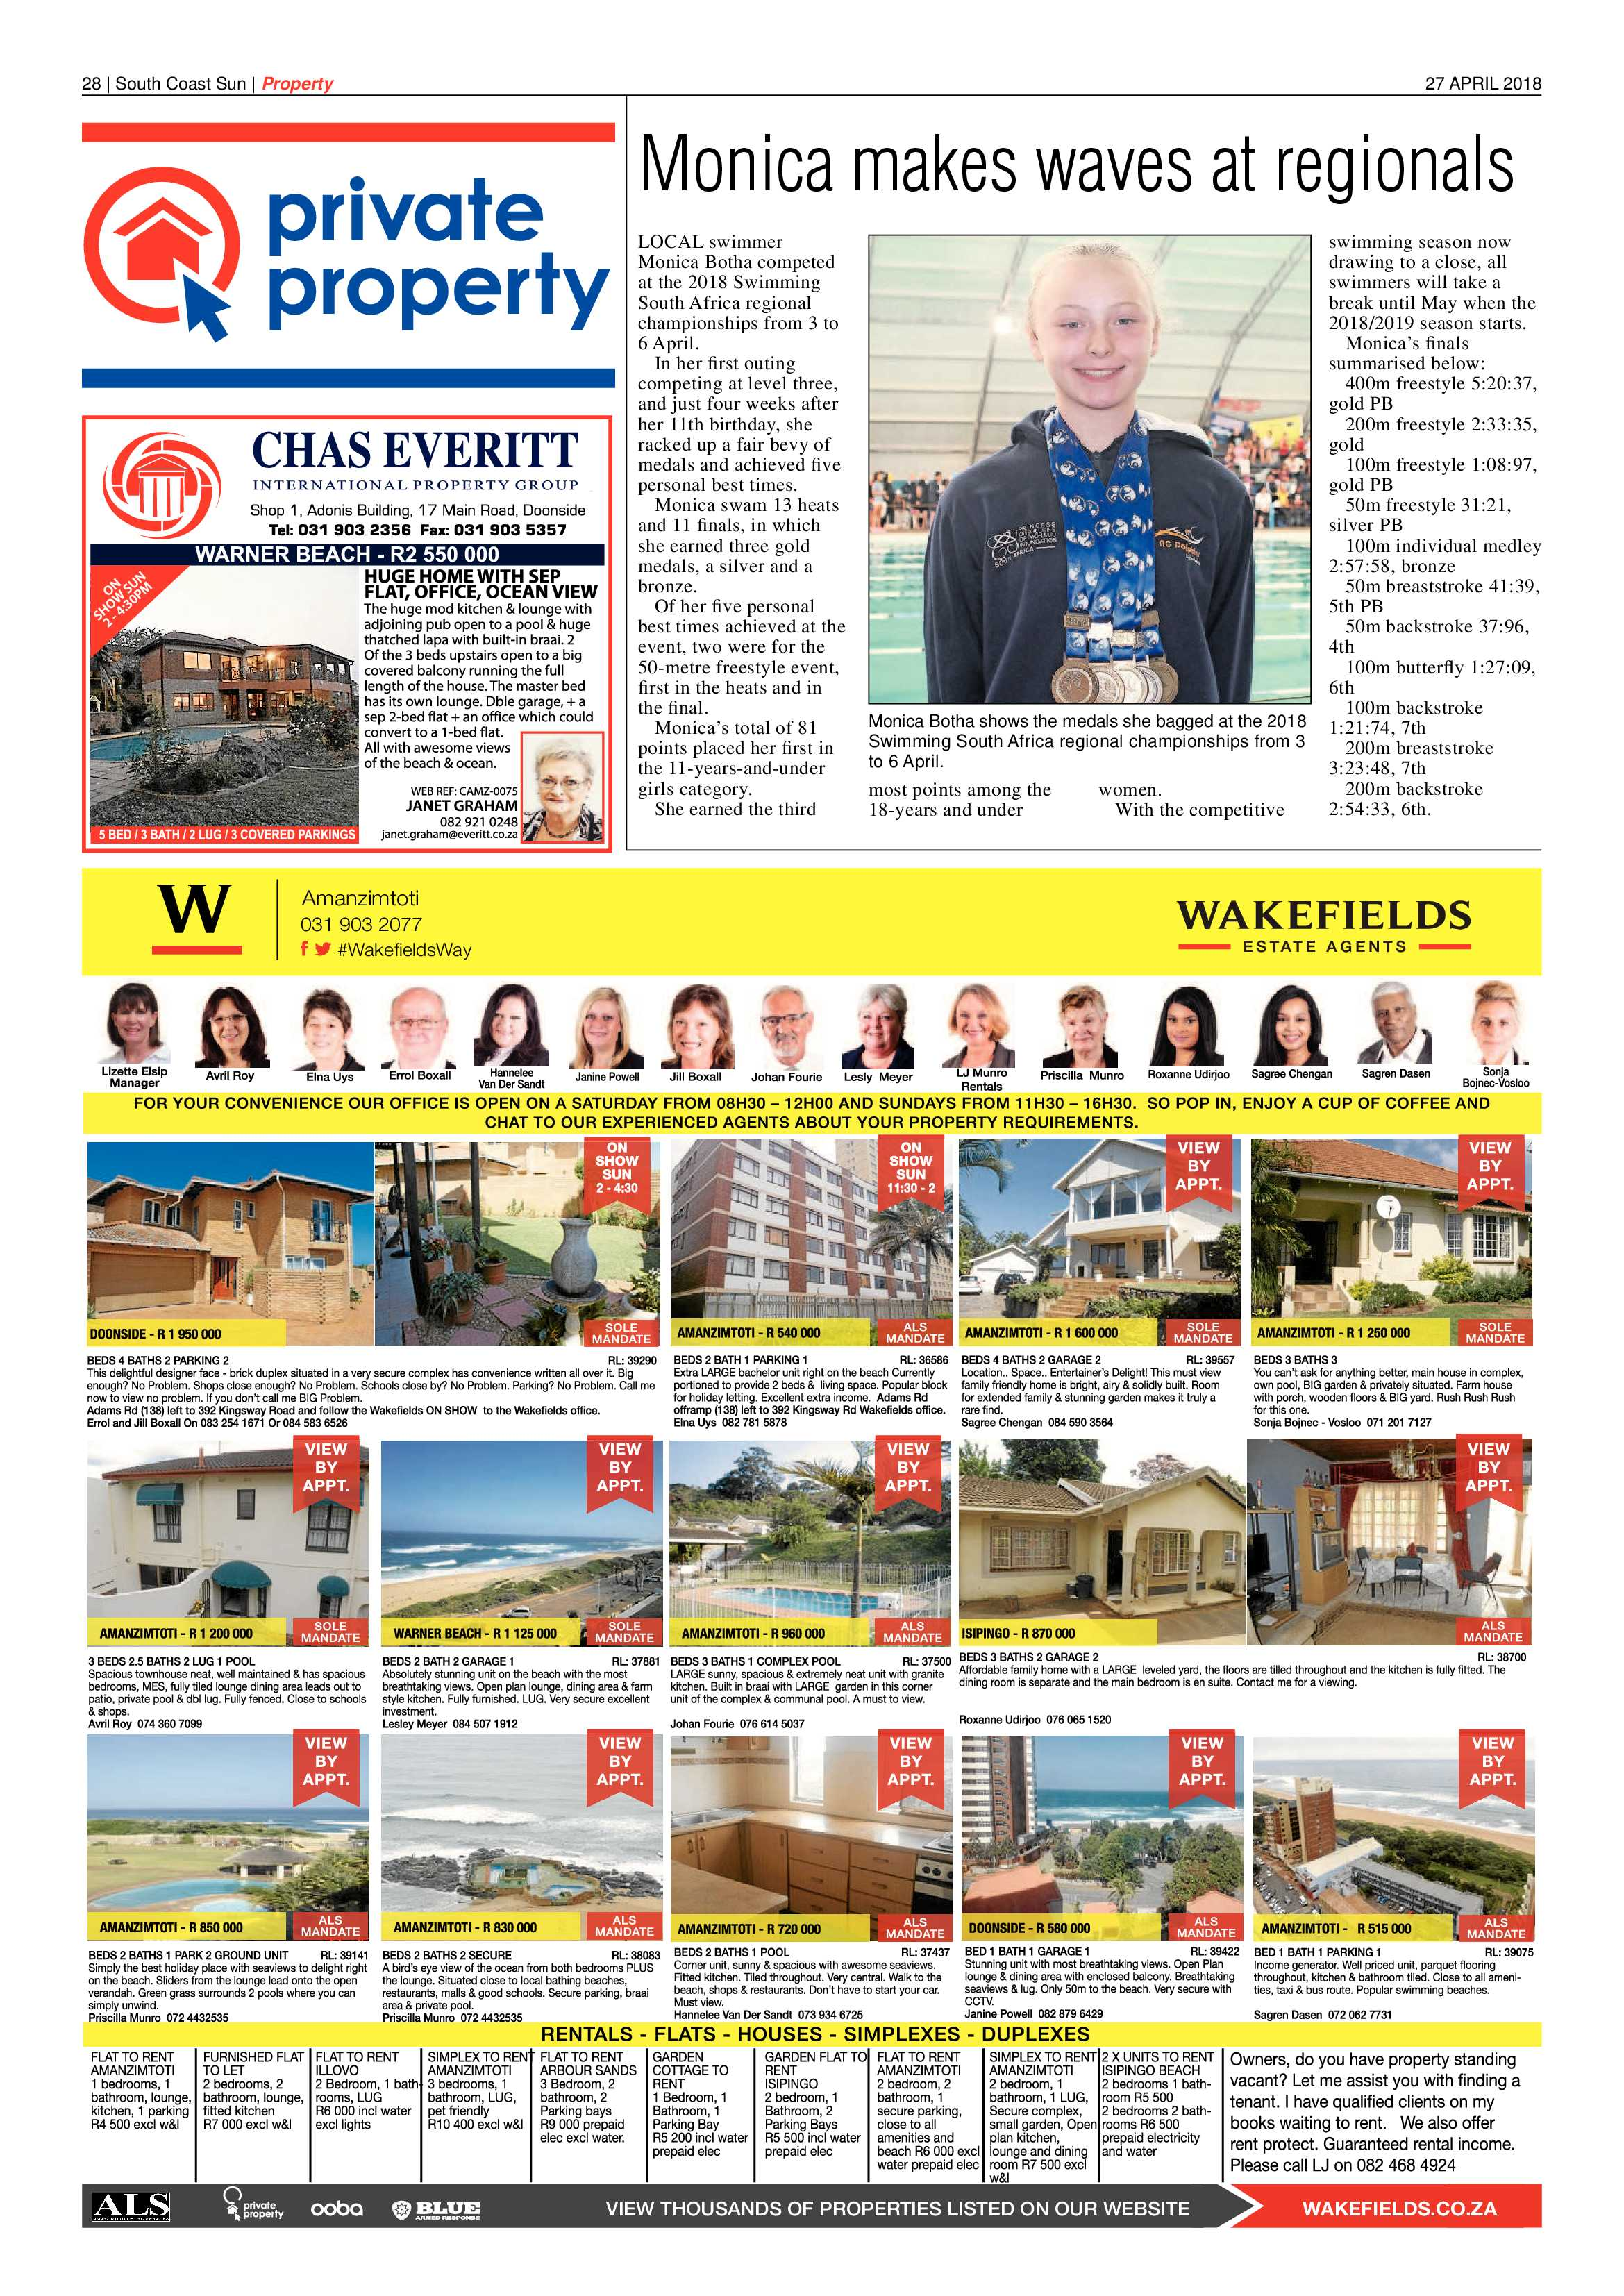 27-april-2018-epapers-page-27